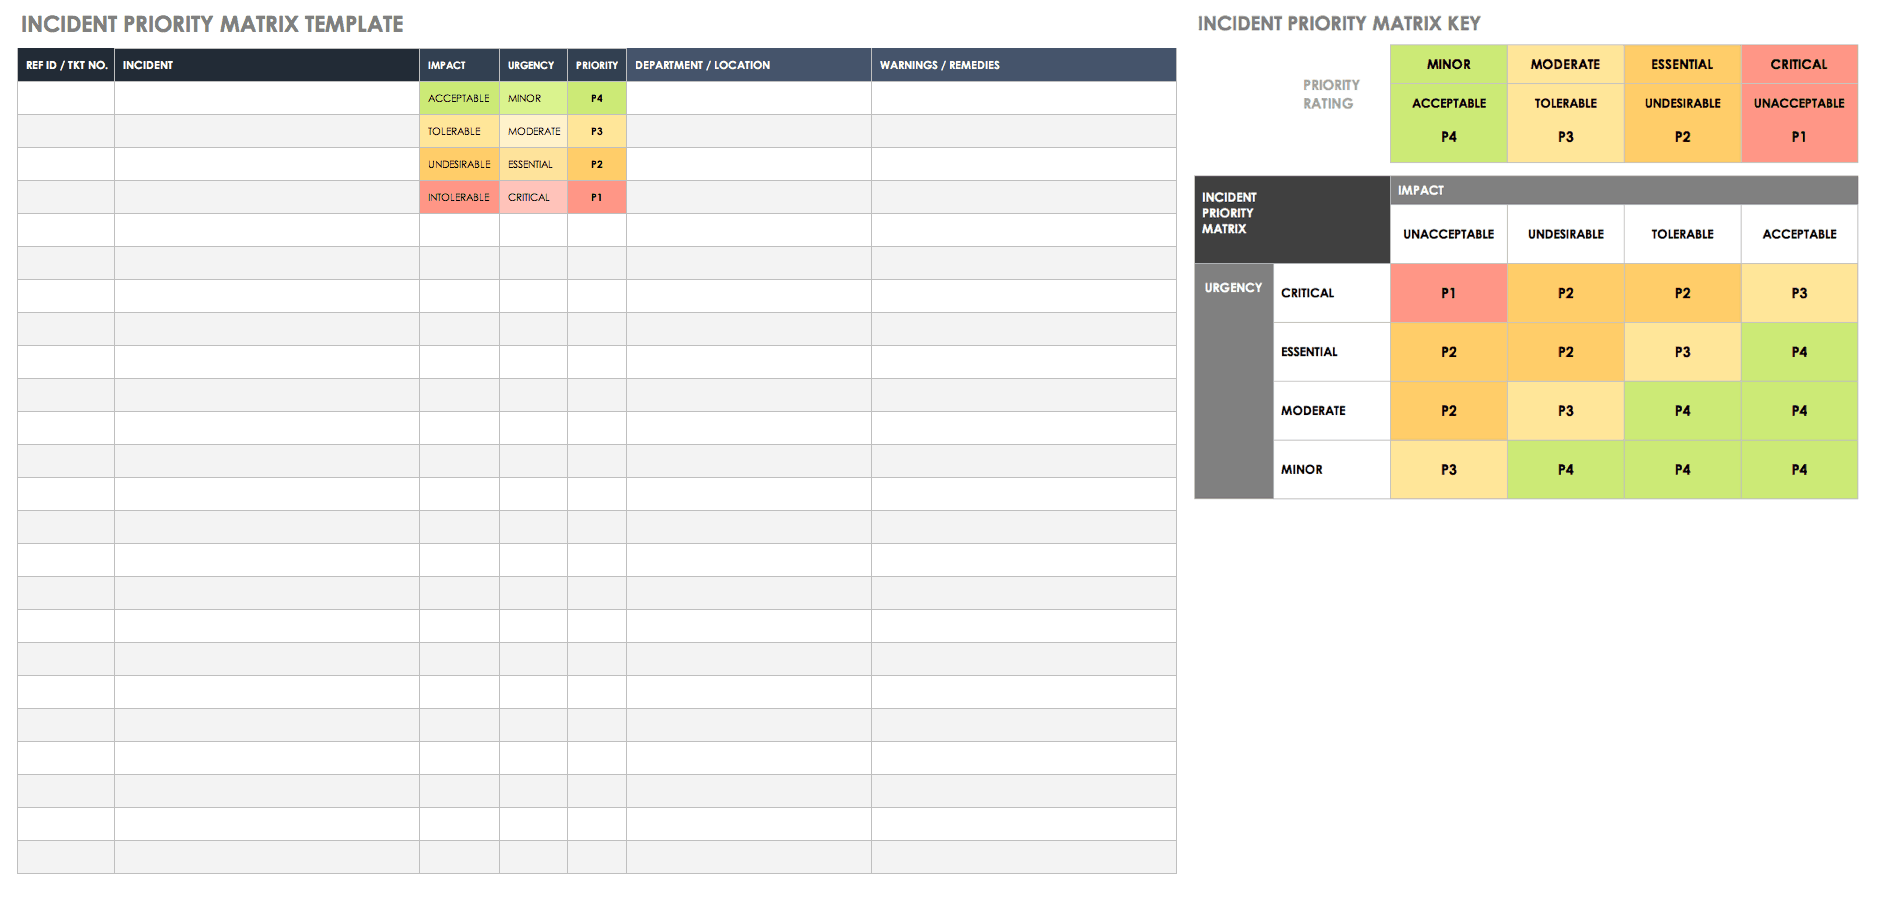 Incident Priority Matrix Template